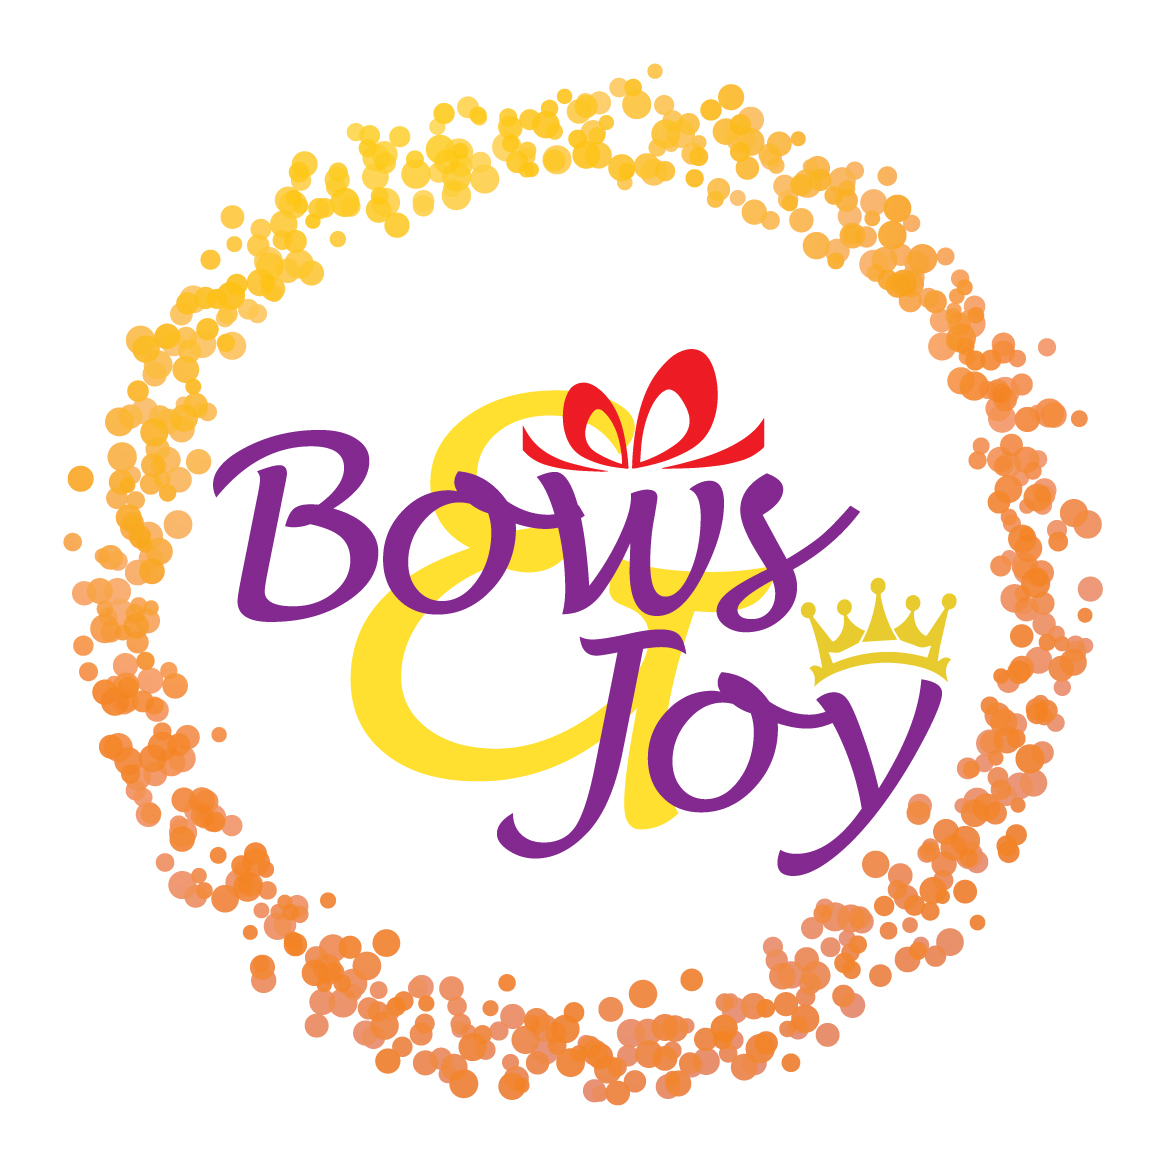 Bows And Joy Ltd